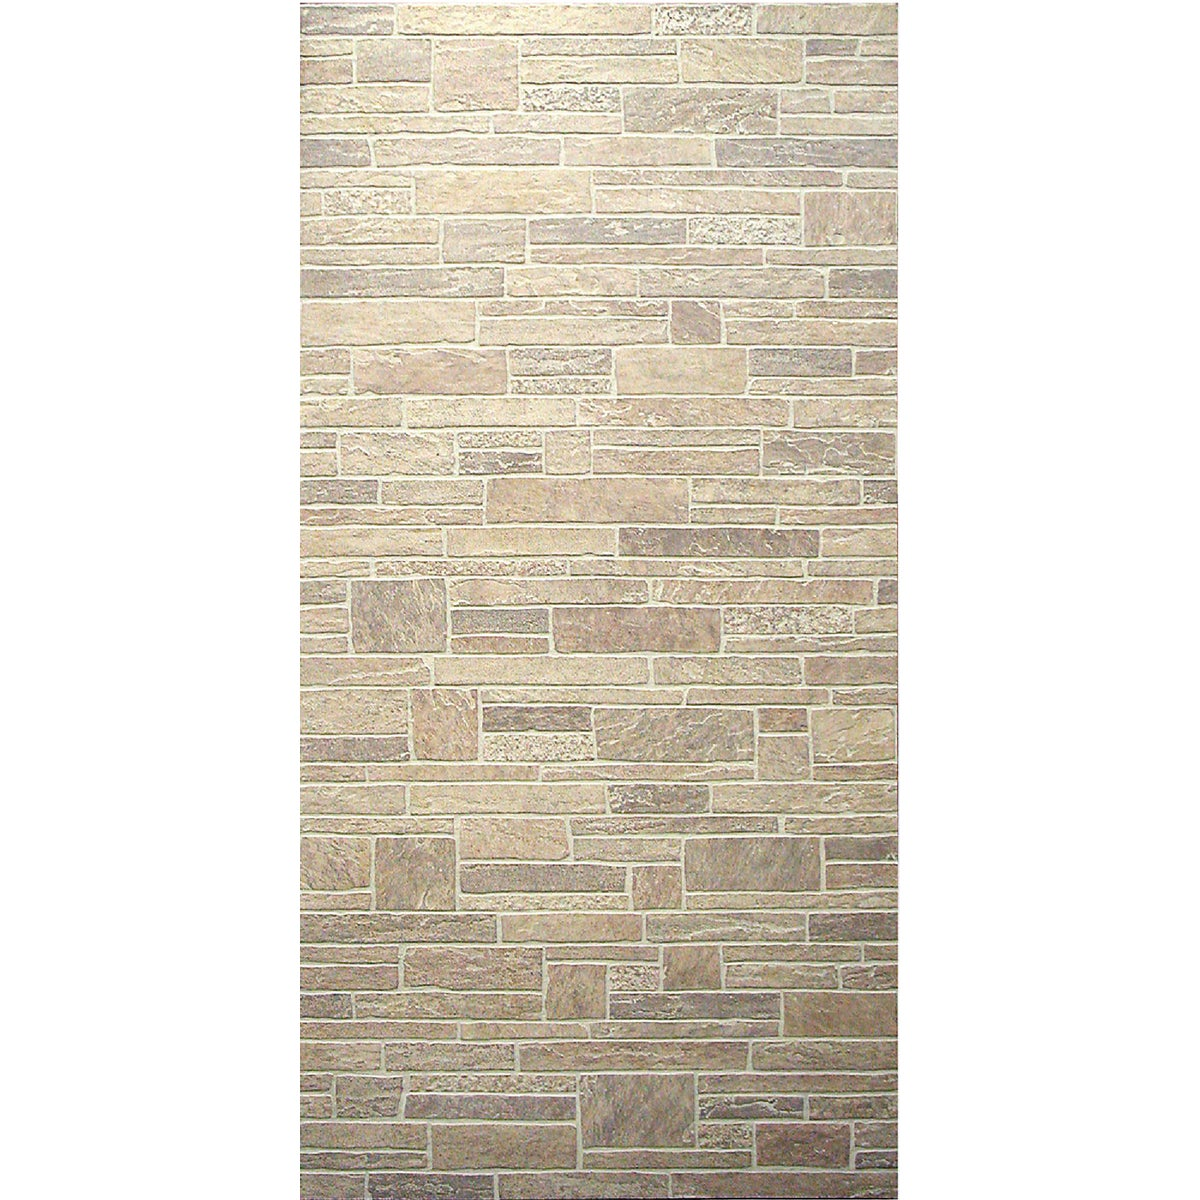 "1/4"" CANYON STONE PANEL - 173 by Dpi Decorative Panel"